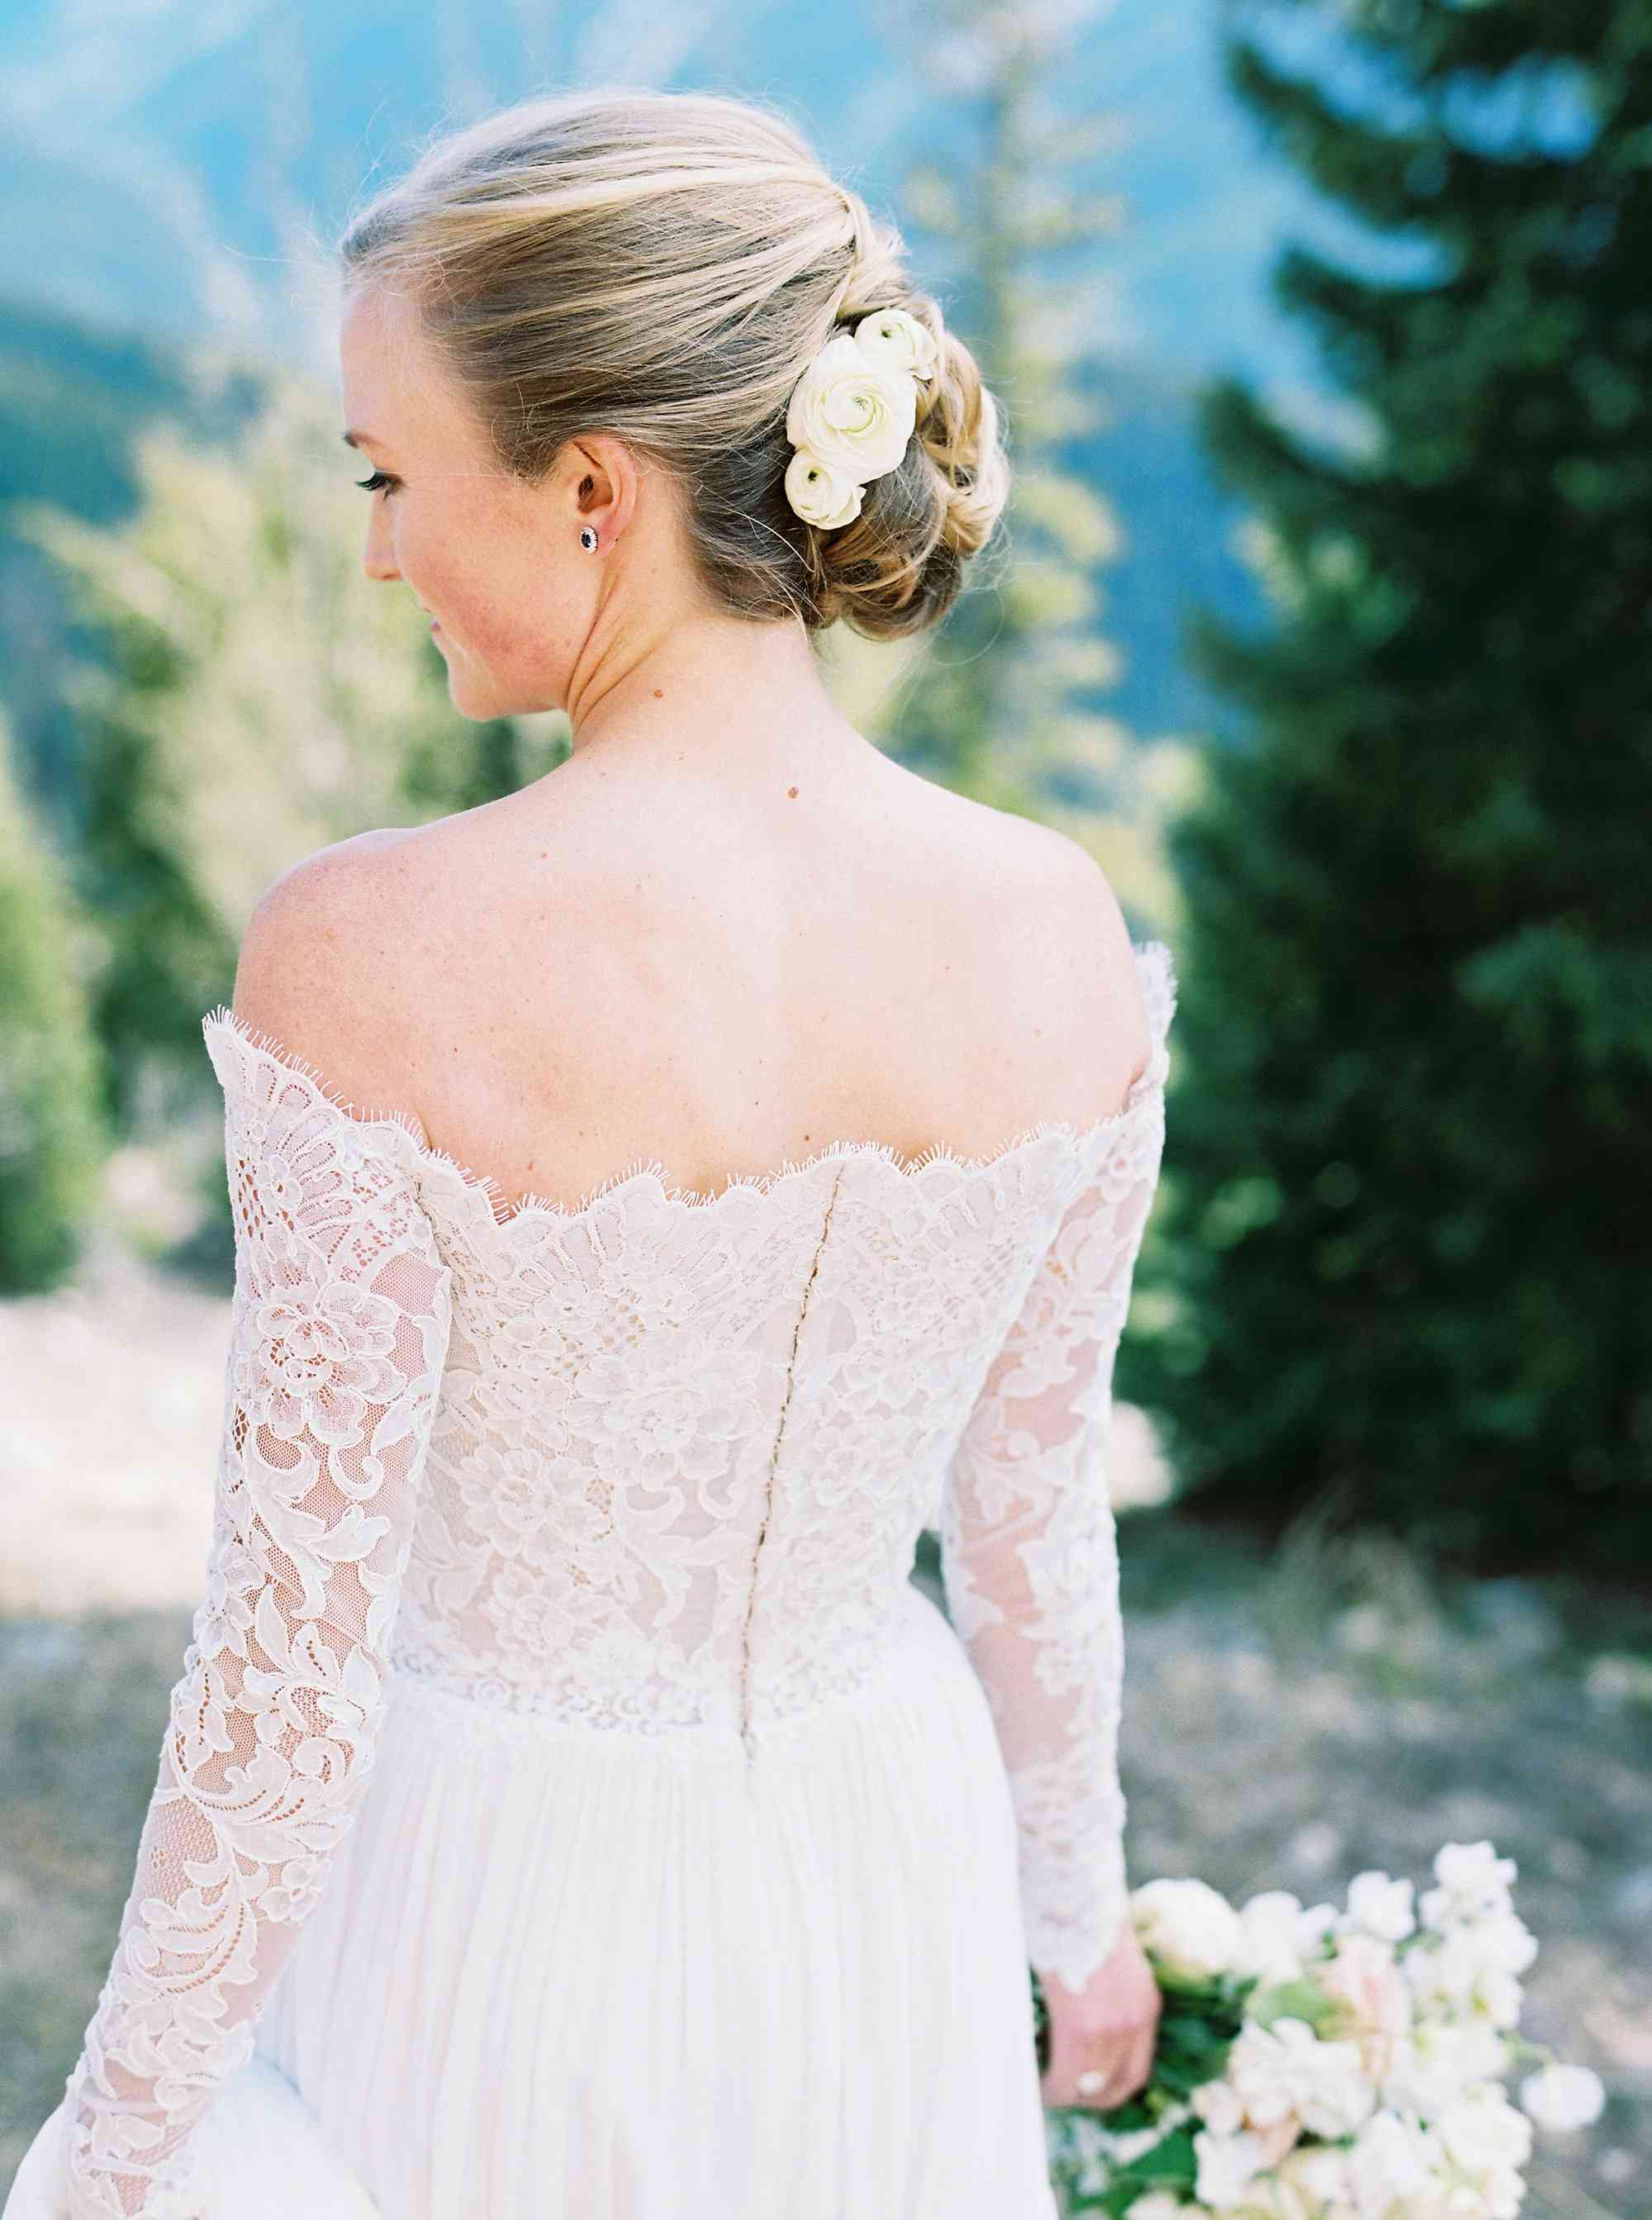 <p>wedding hairstyles updo</p><br><br>